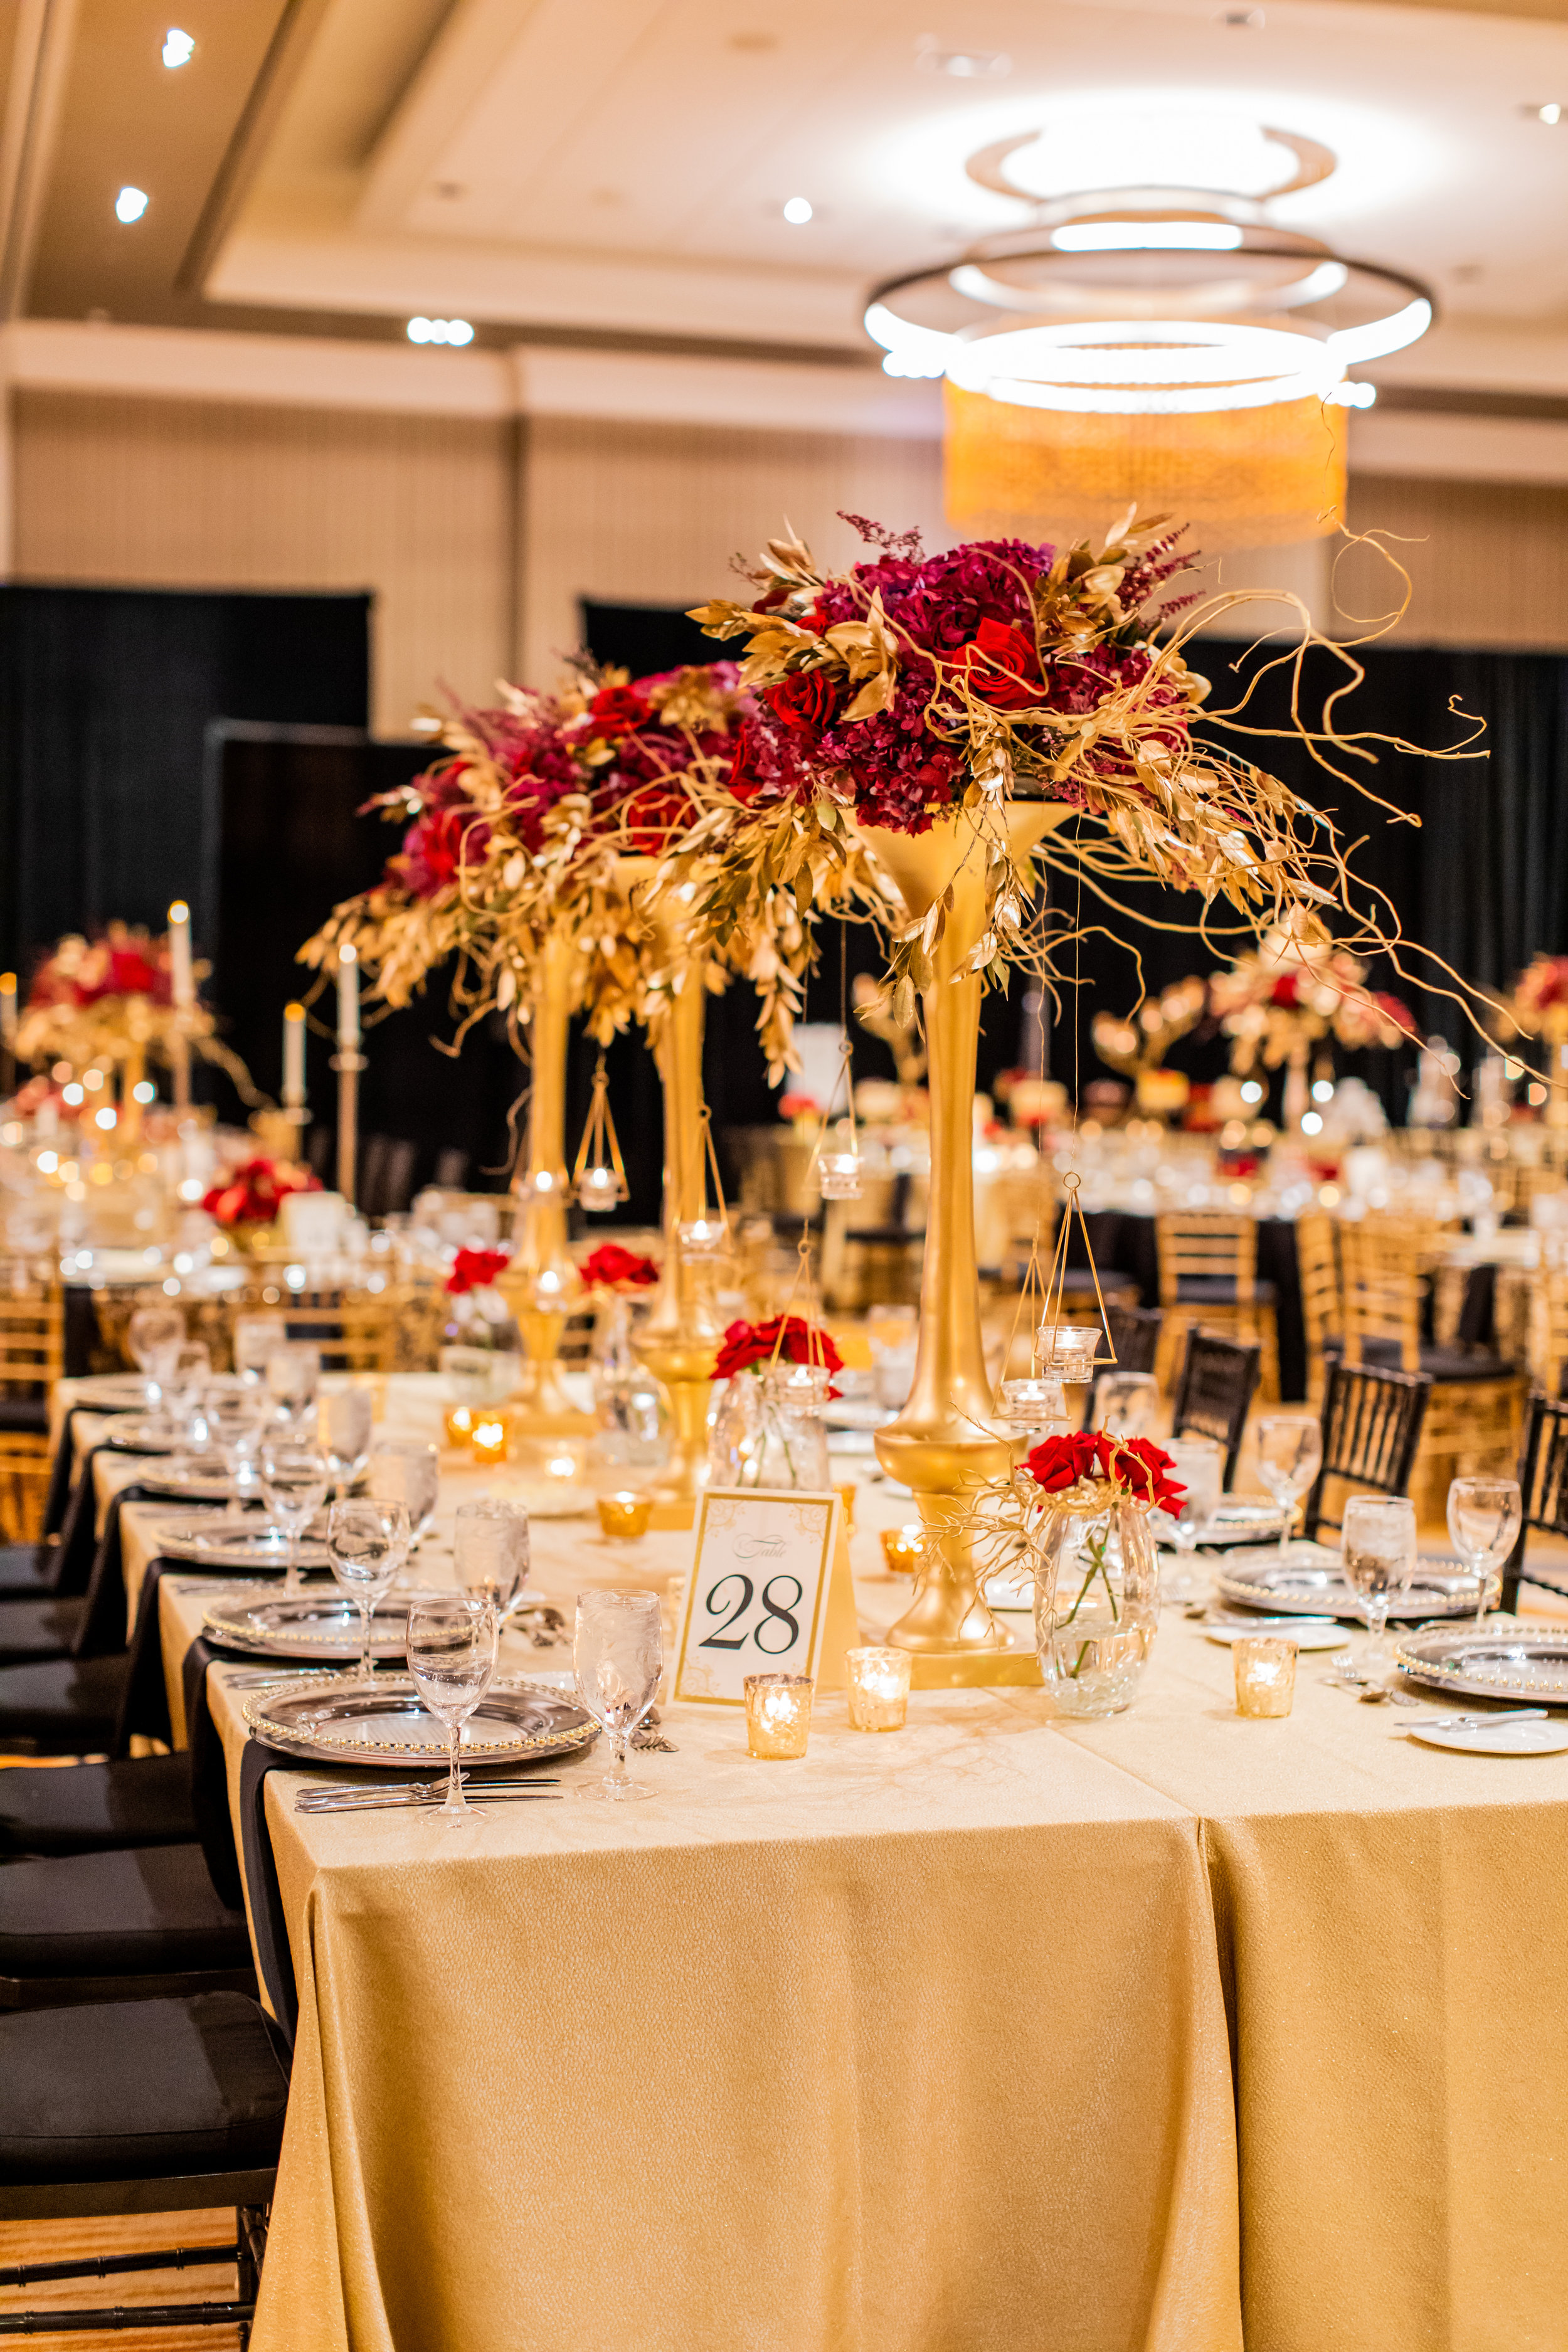 Ali_Louisville_Wedding_Emily_Lester_Photography_ReceptionDetails-69.jpg